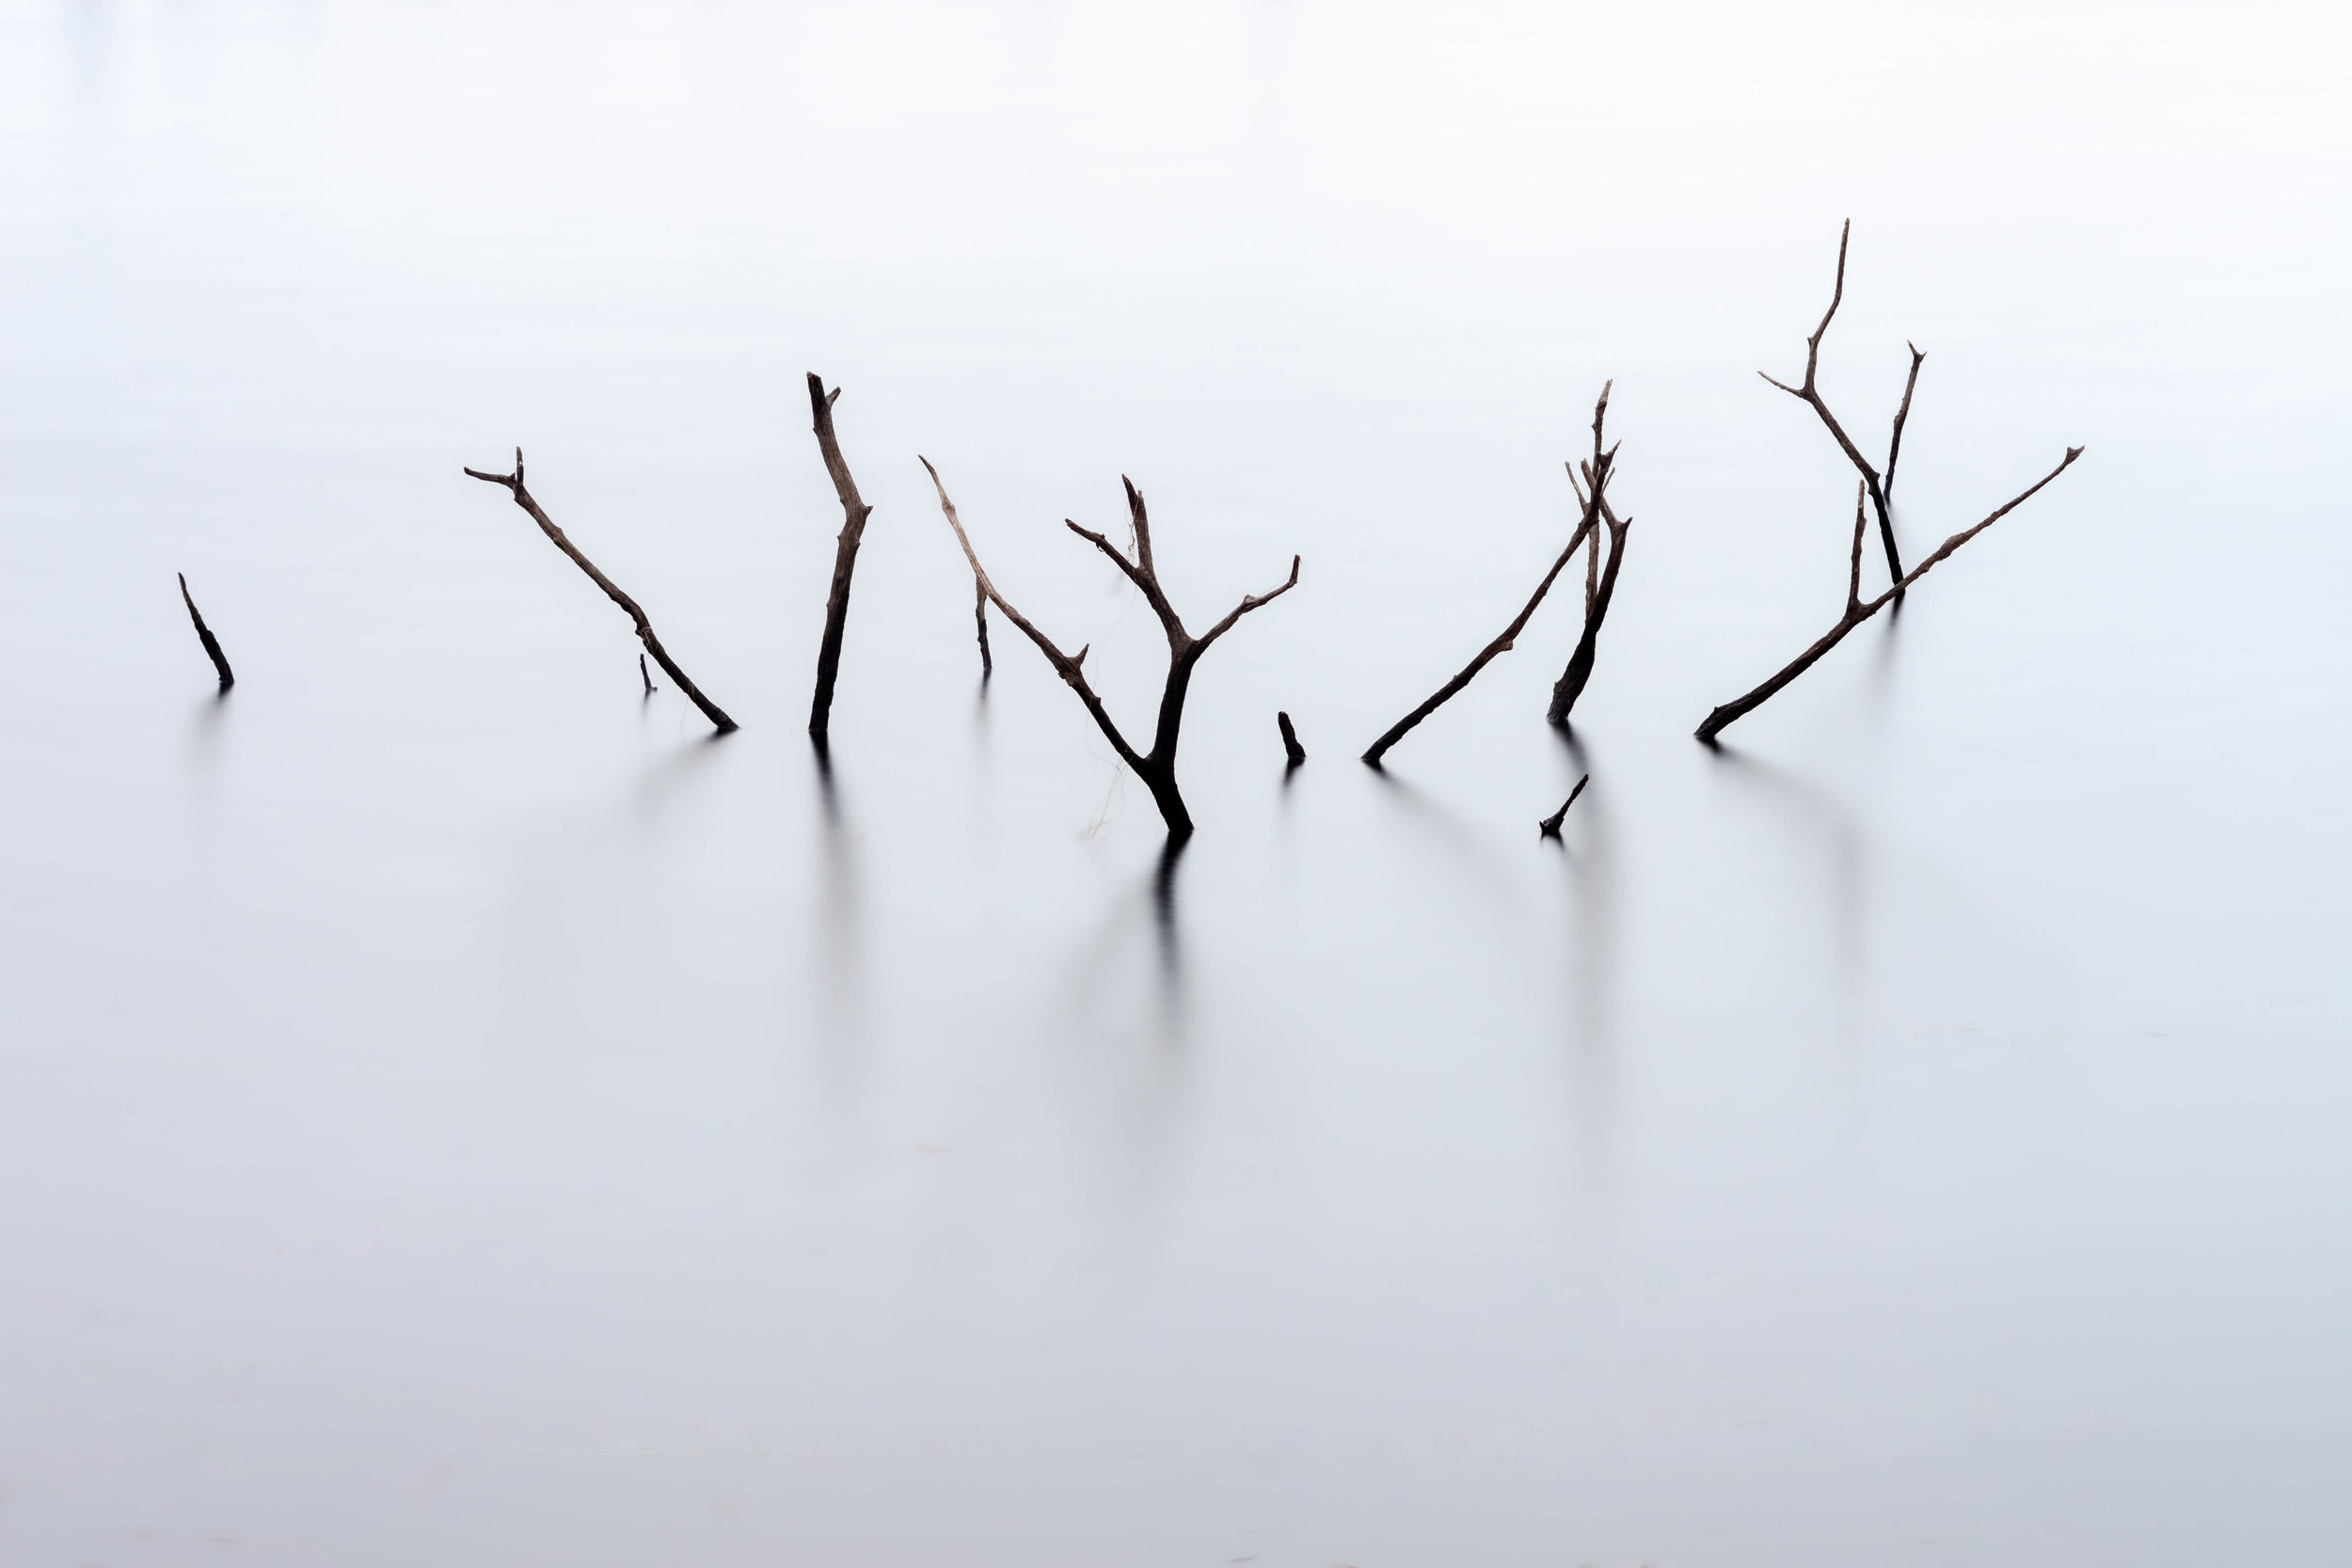 MINIMALISM - Minimalism is a genre of photography that i don't do enough of but its one of my favourite genres. In this video i set out to shoot some Michael Kenna style shots and i will let you decide whether i succeed or not.